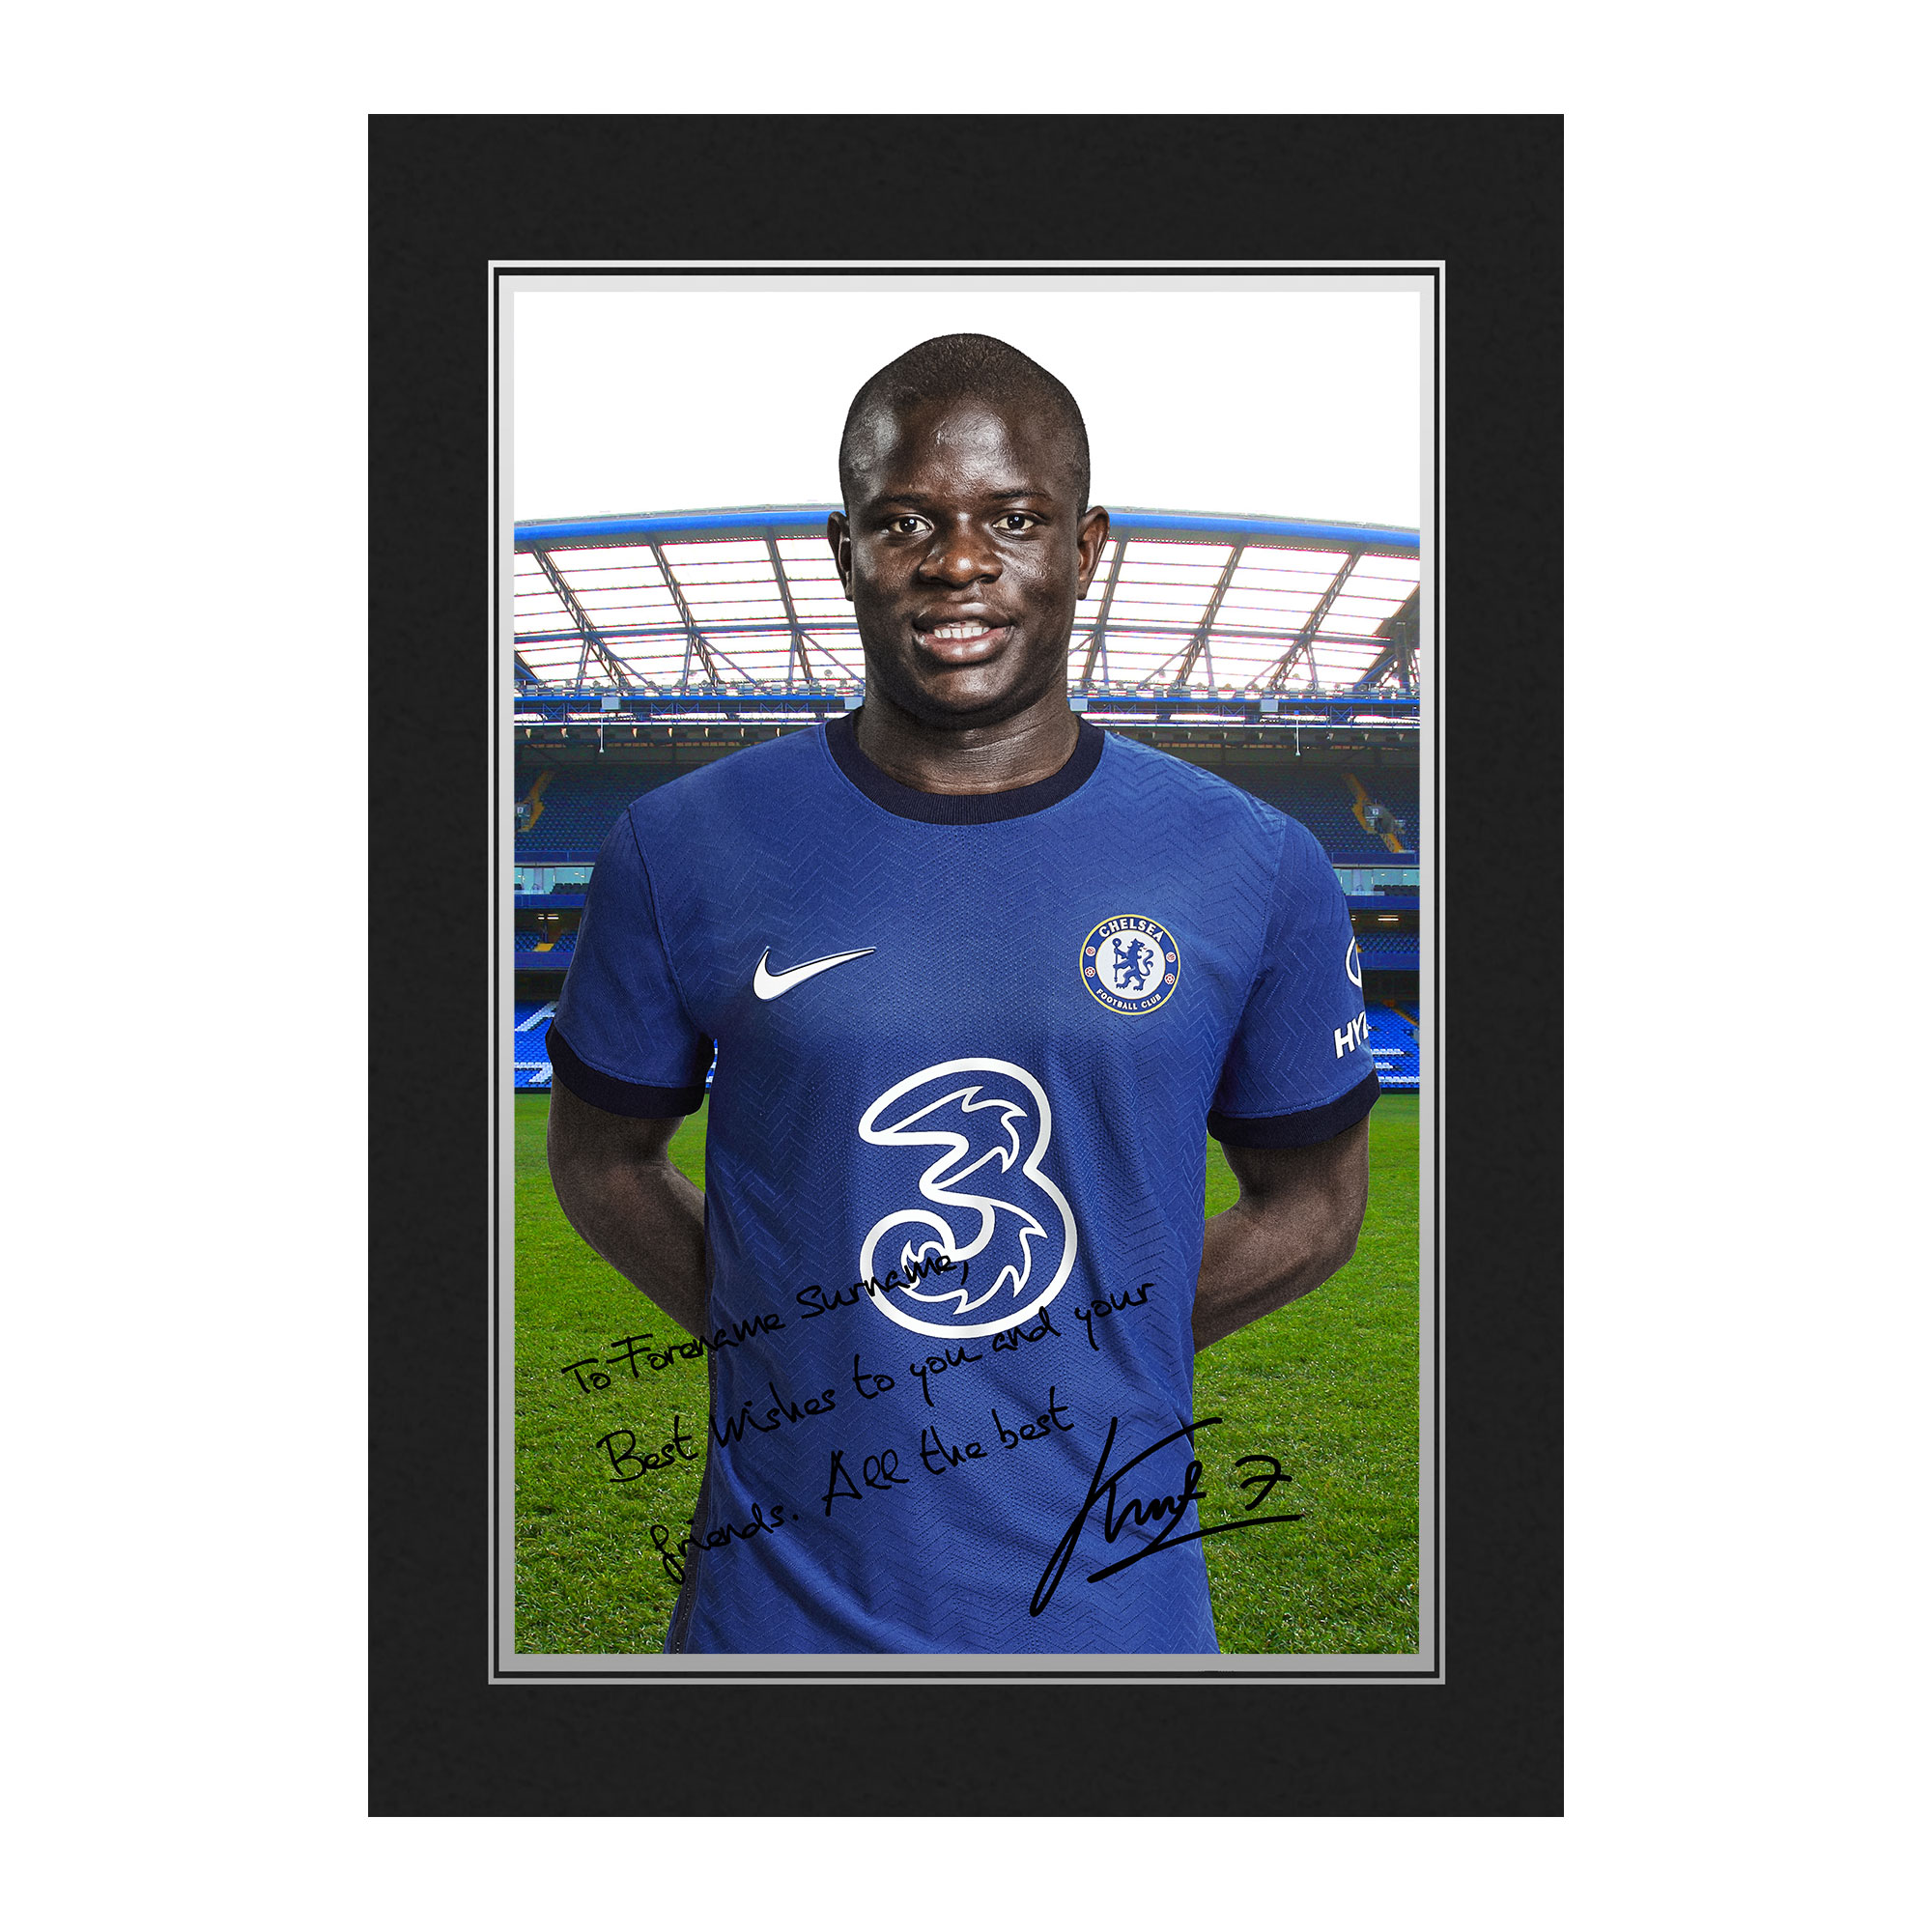 Chelsea FC Kante Autograph Photo Folder